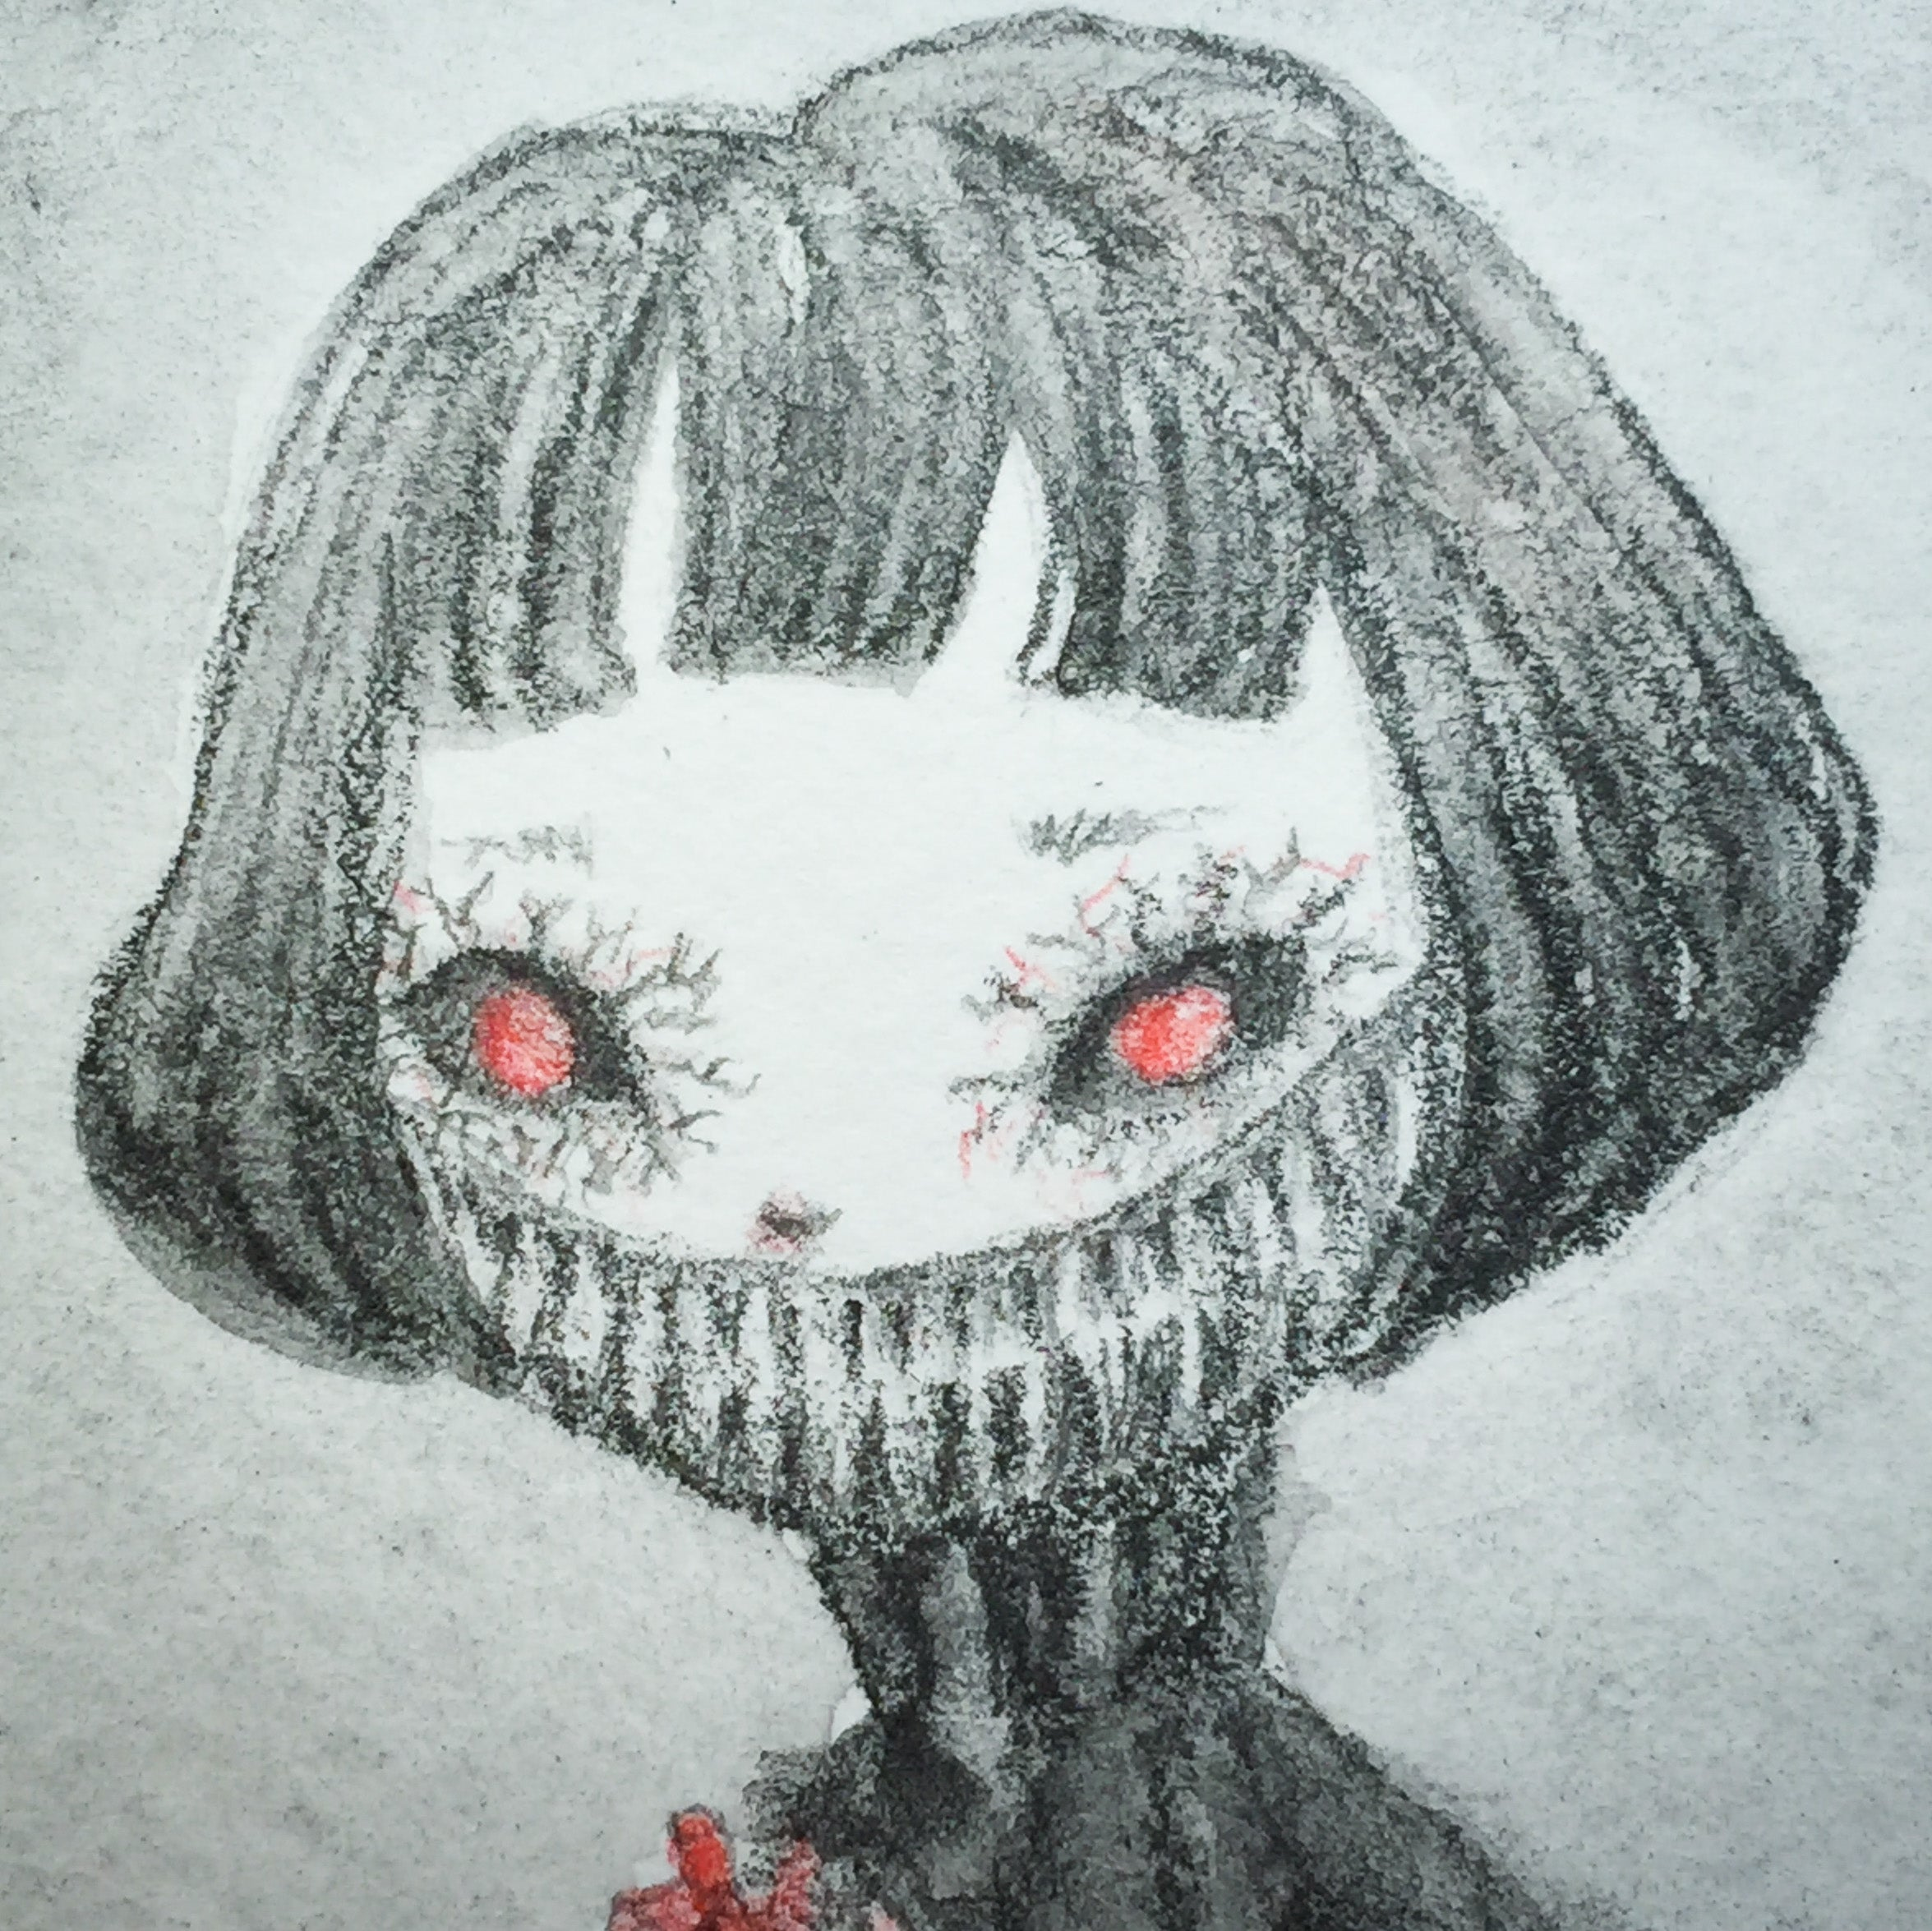 Darknita Danita Monster Creature Ghoul Watercolor Graphite Pencil Drawing ACEO Card Original Halloween Illustration Heart Eat